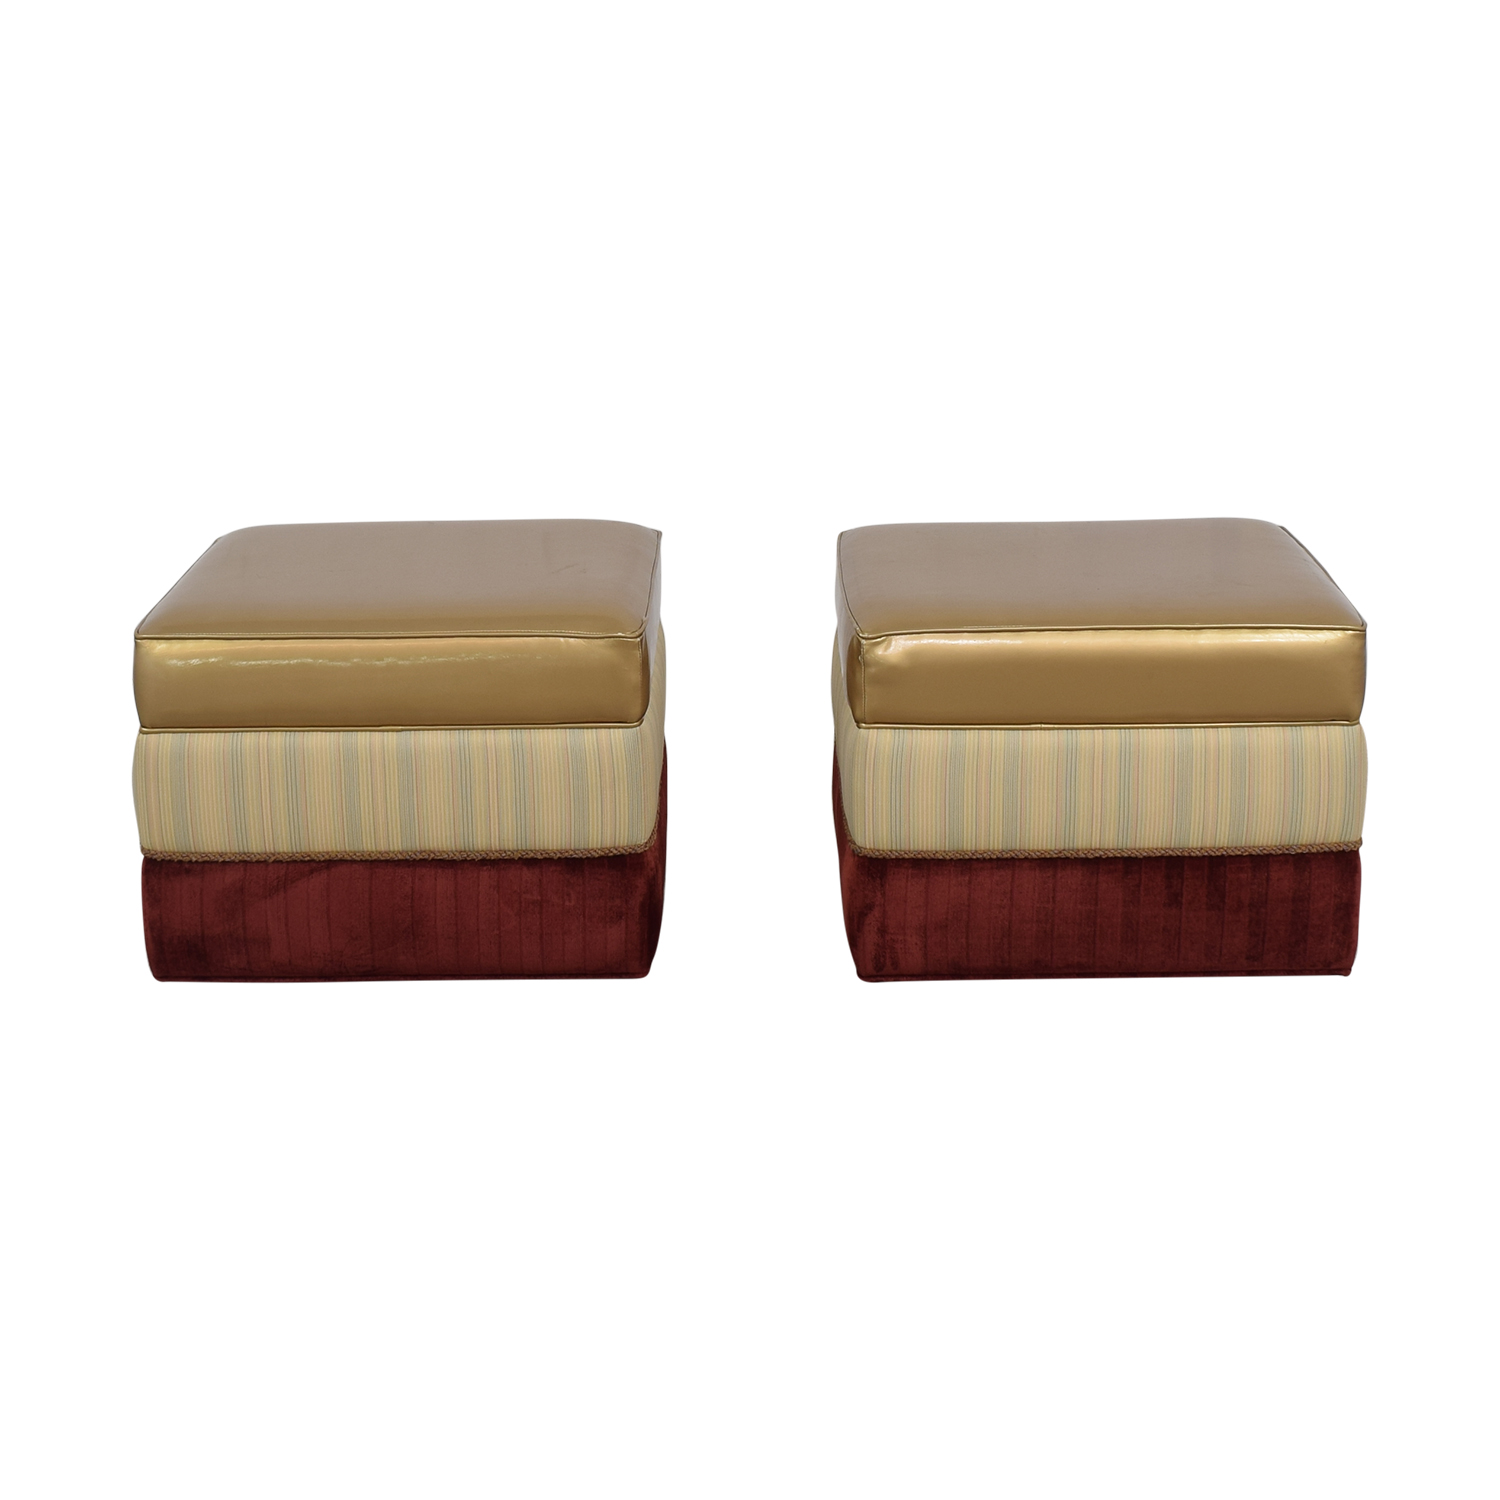 Vanguard Furniture Vanguard Personalized Ottomans multi